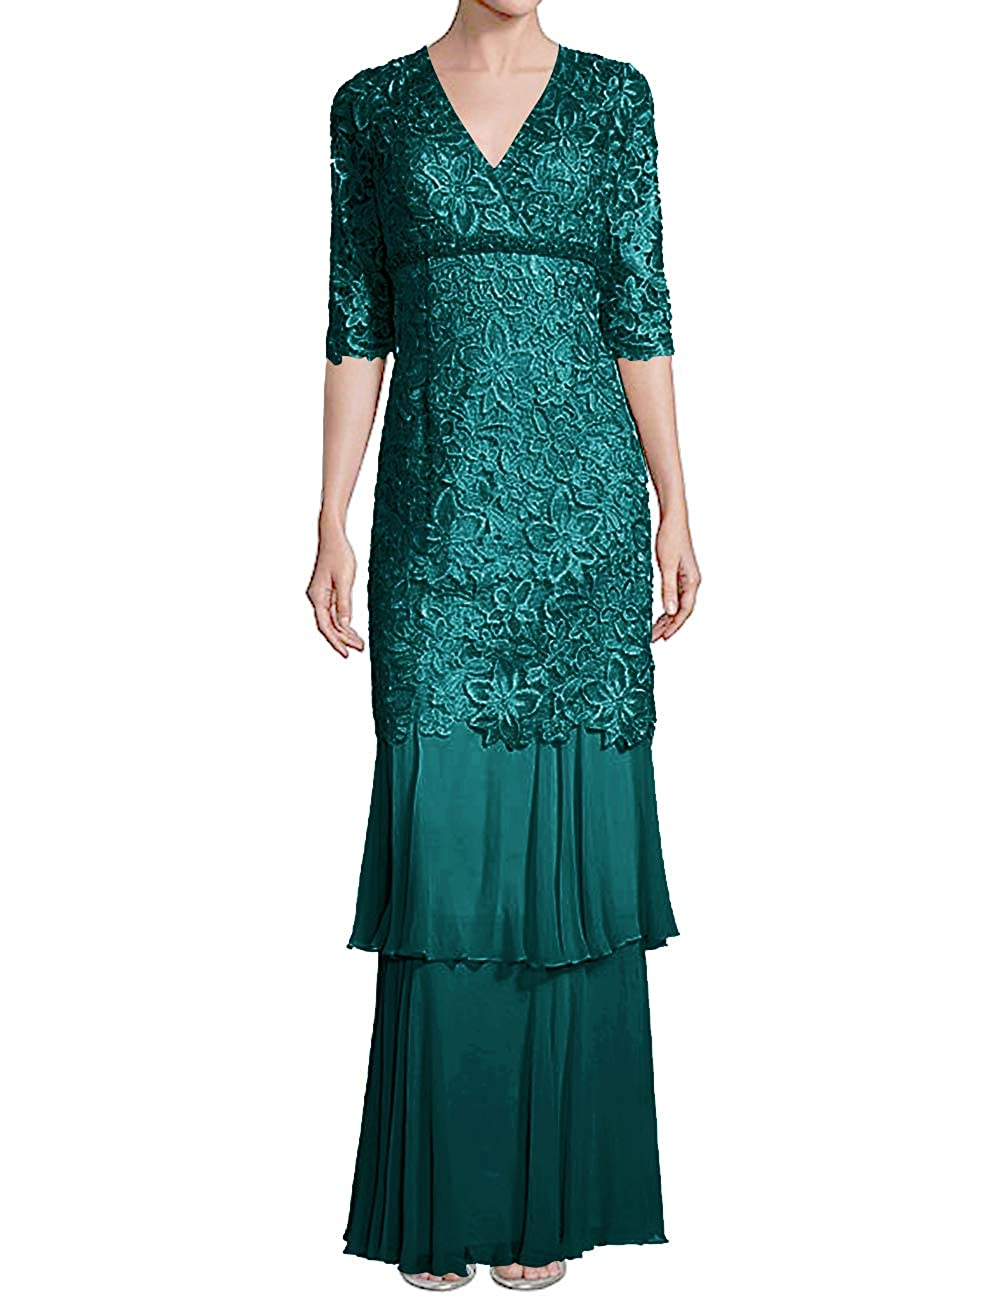 Peacock H.S.D Mother of The Bride Dresses Lace Formal Gowns Long Evening Dresses Sleeve Tiered